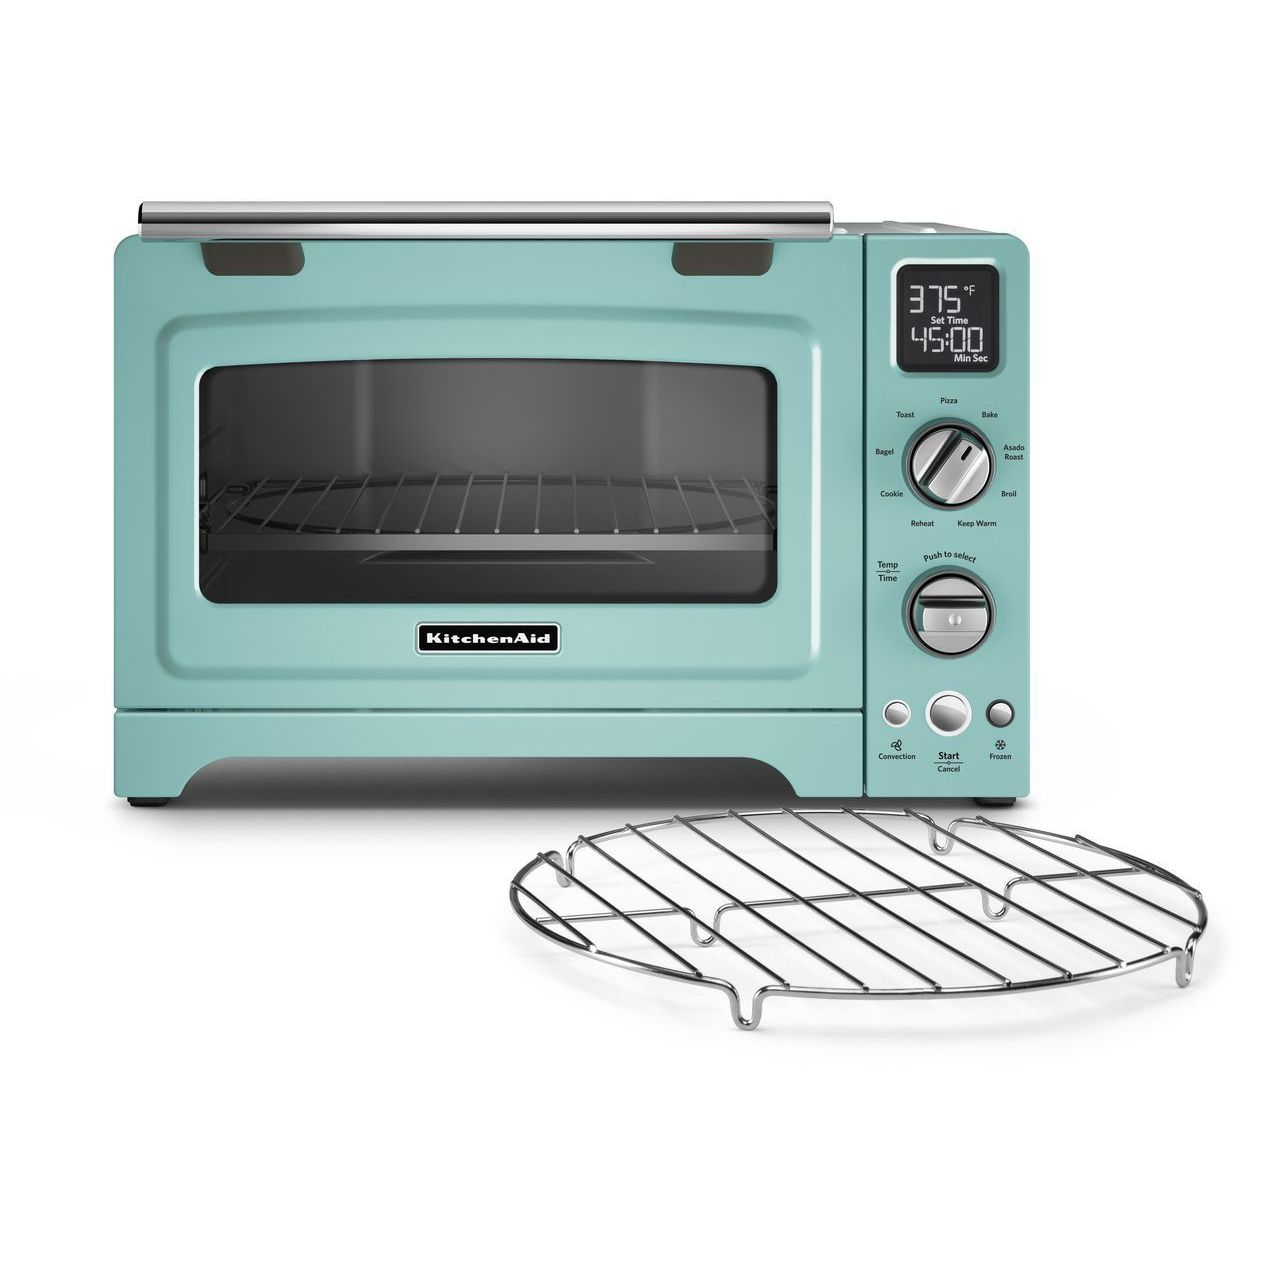 Shop KitchenAid KCO275SS Stainless-Steel 12-inch Digital Countertop ...